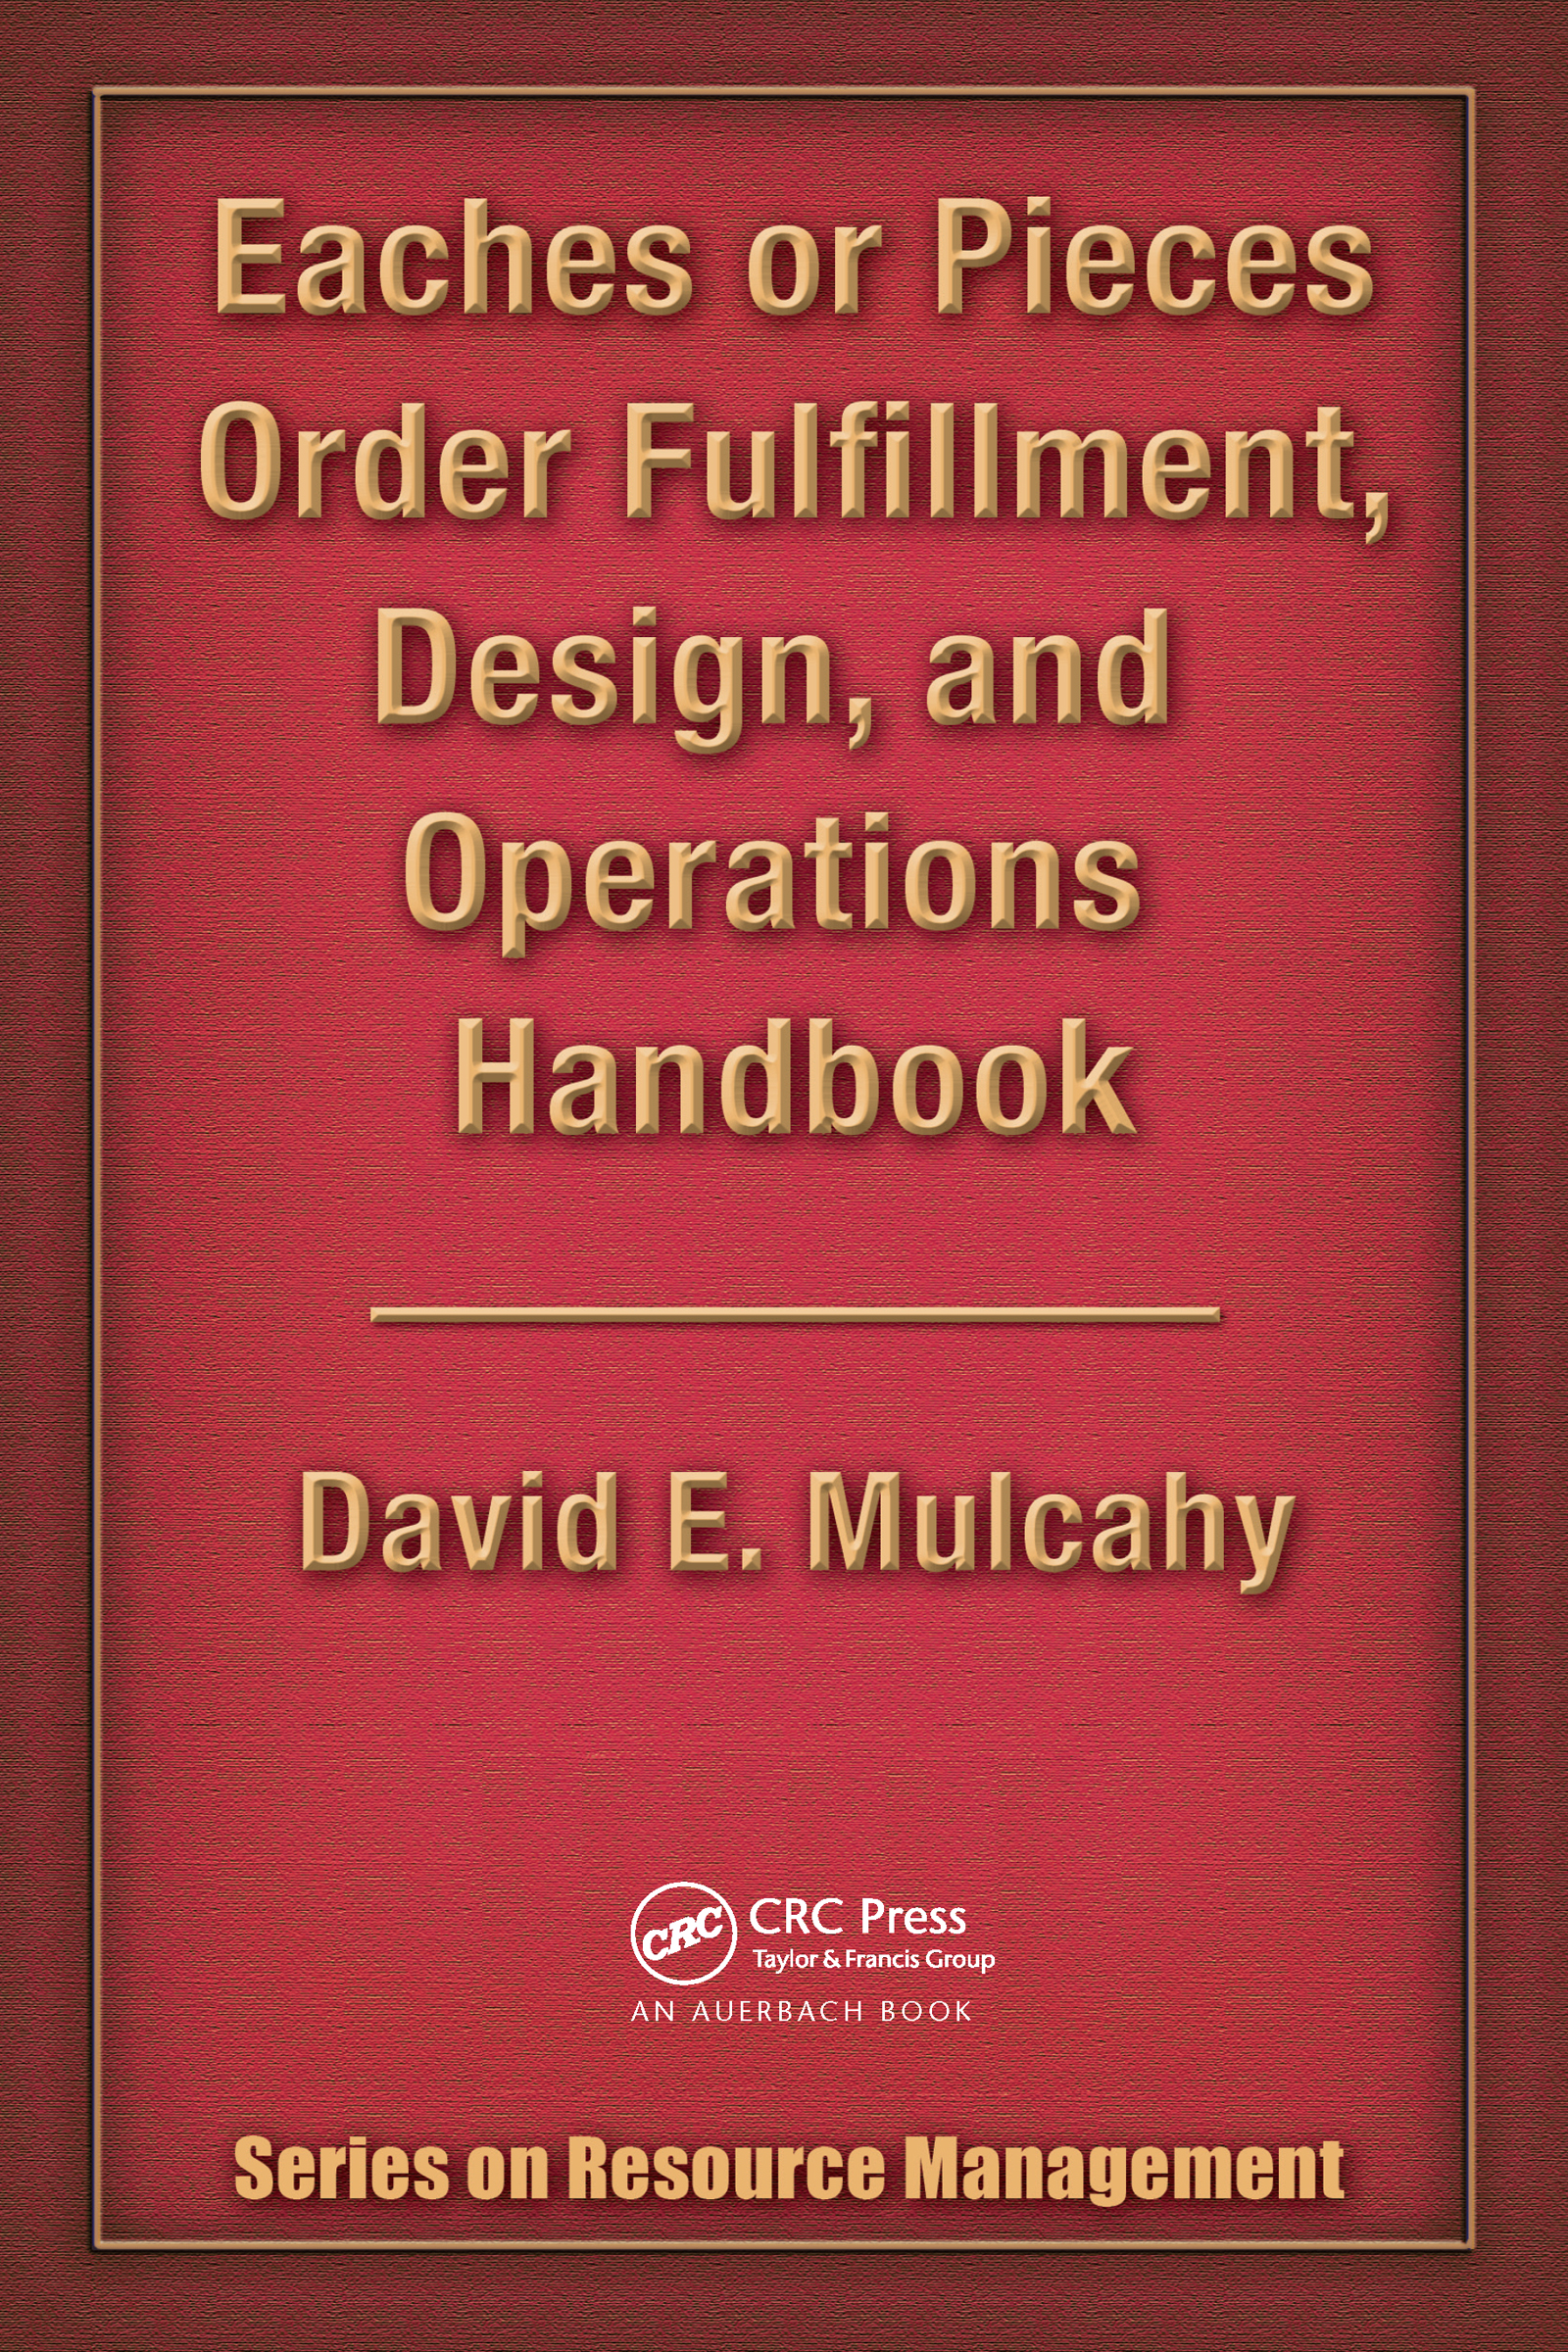 Eaches or Pieces Order Fulfillment, Design, and Operations Handbook: 1st Edition (Hardback) book cover